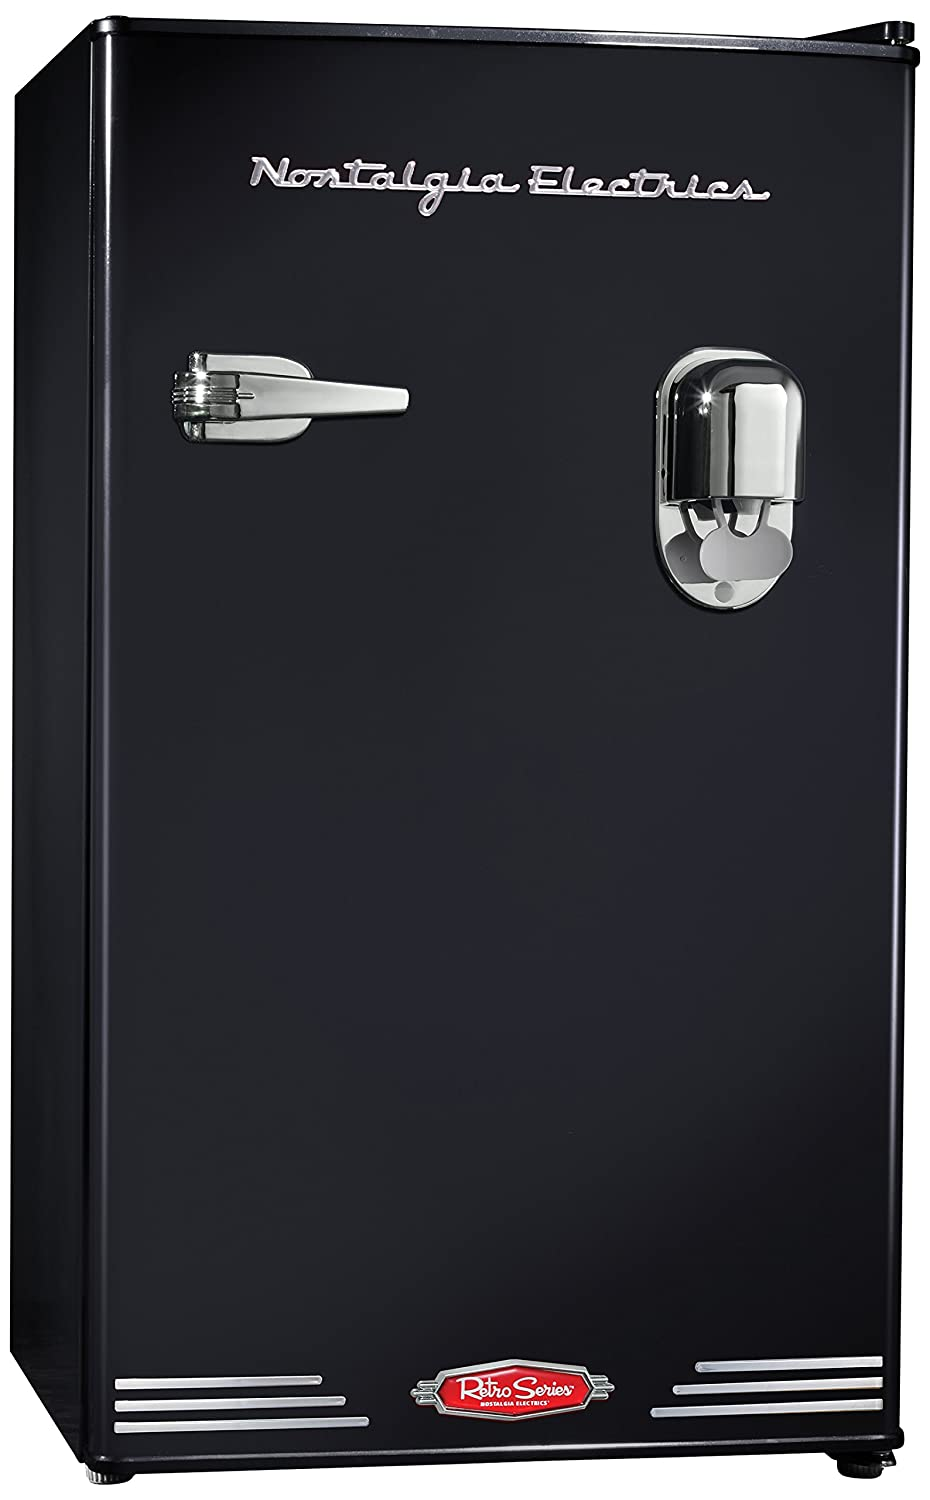 Nostalgia Electrics RRF300DNCBLK 3.0 Retro Series 3.0-Cubic Foot Compact Refrigerator with Exterior Beverage Dispenser, Black